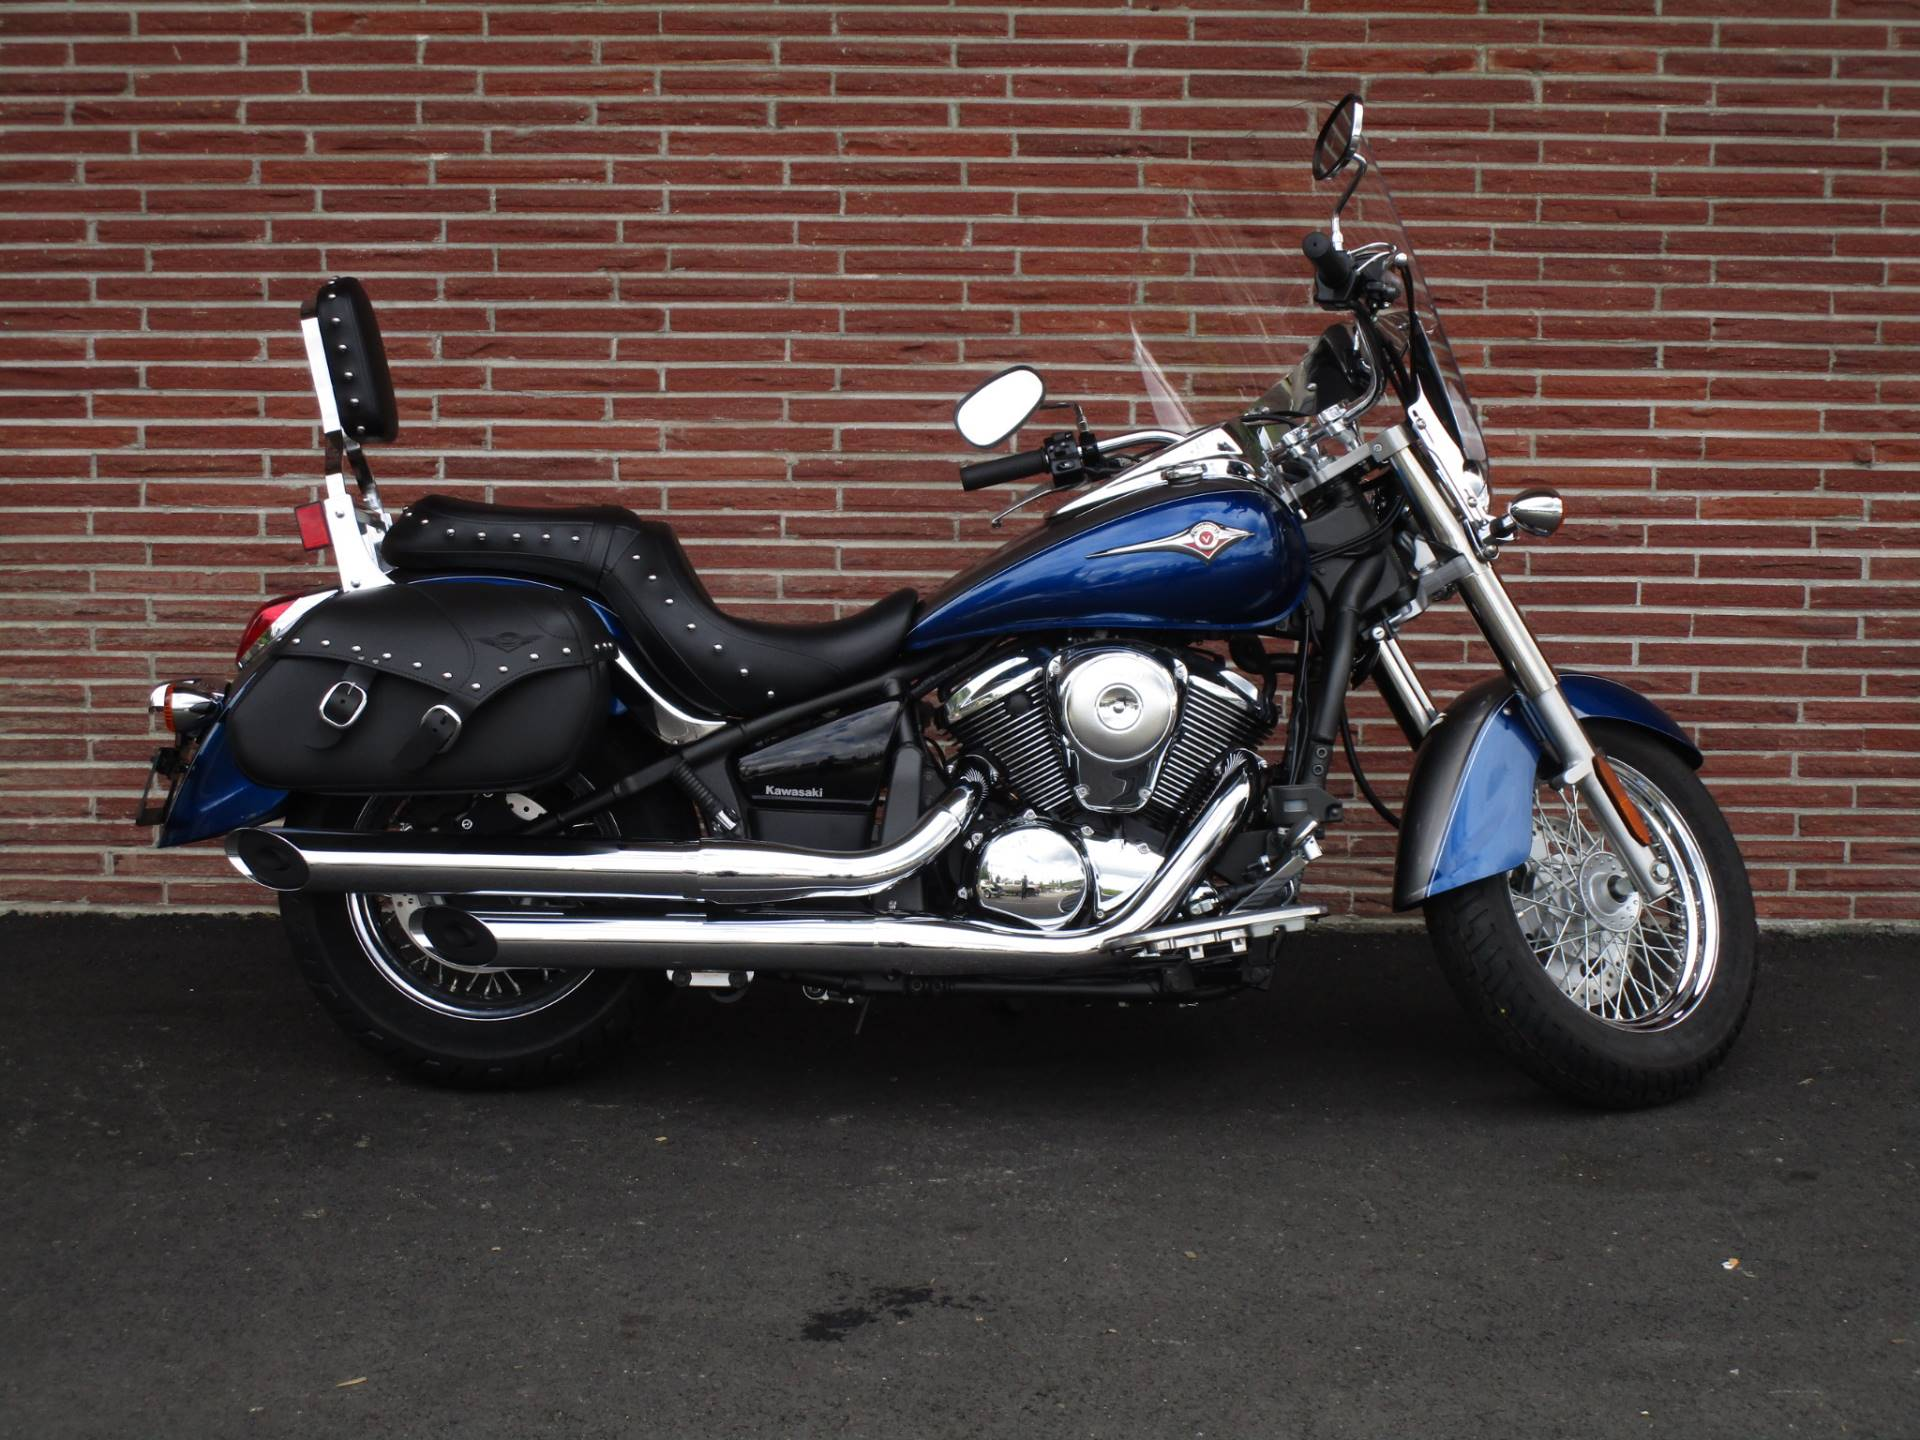 2019 Kawasaki Vulcan 900 Classic LT in Bellevue, Washington - Photo 1